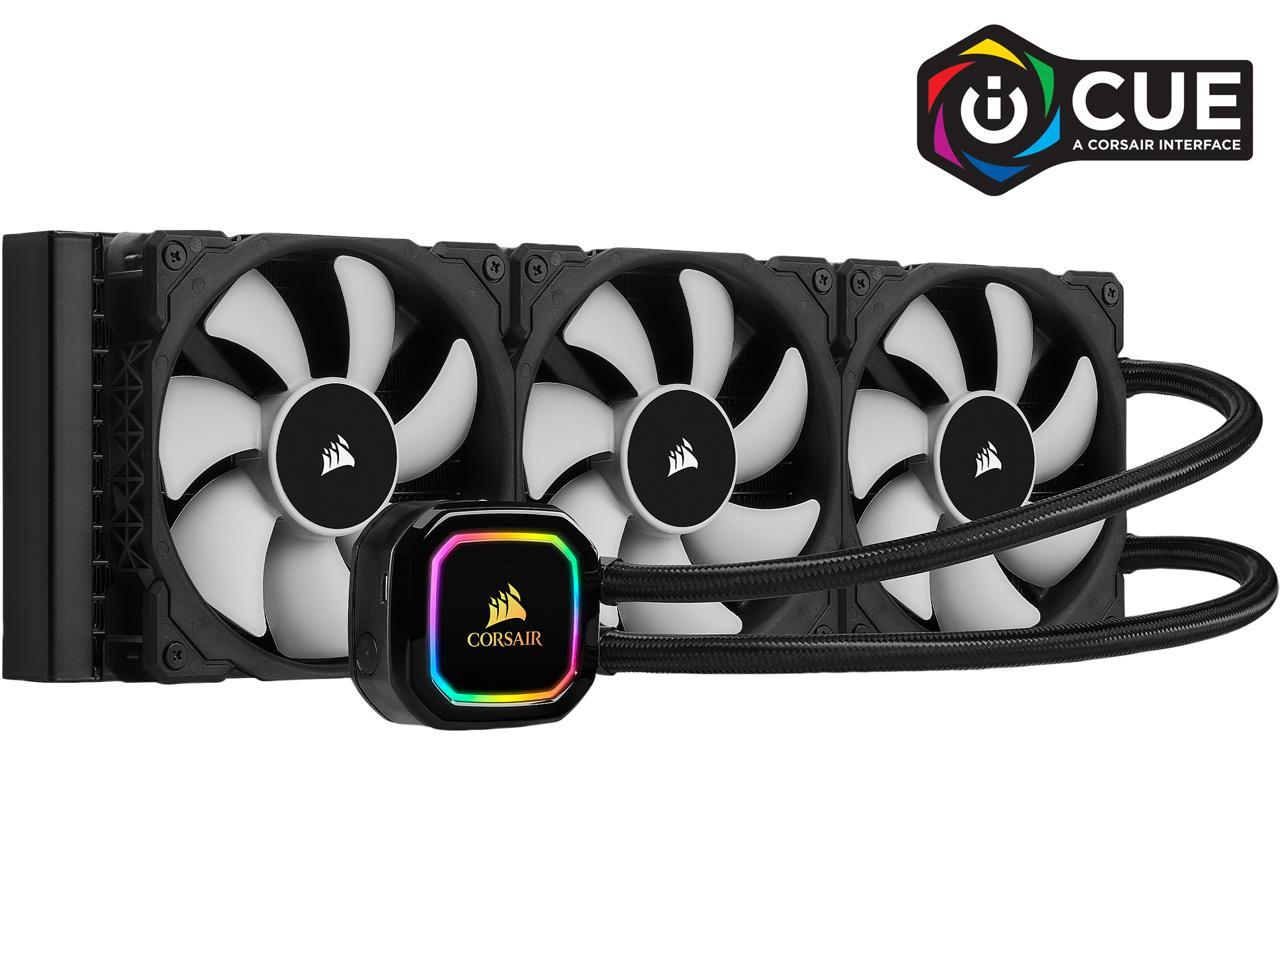 CORSAIR iCUE H150i RGB Pro XT Liquid CPU Cooler CW-9060045-WW